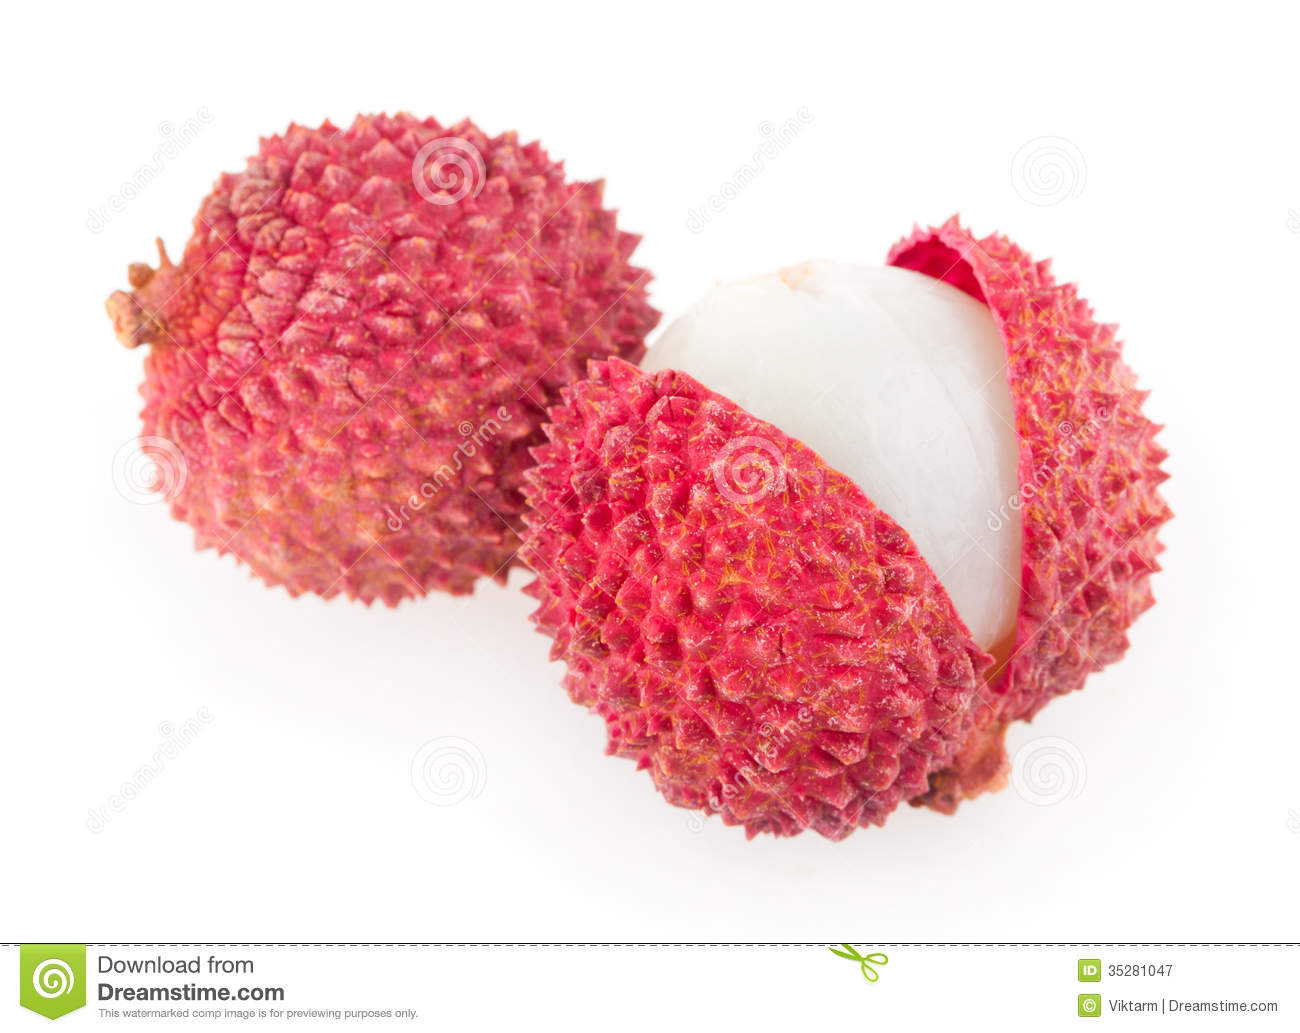 Lychee Royalty Free Stock Photography.